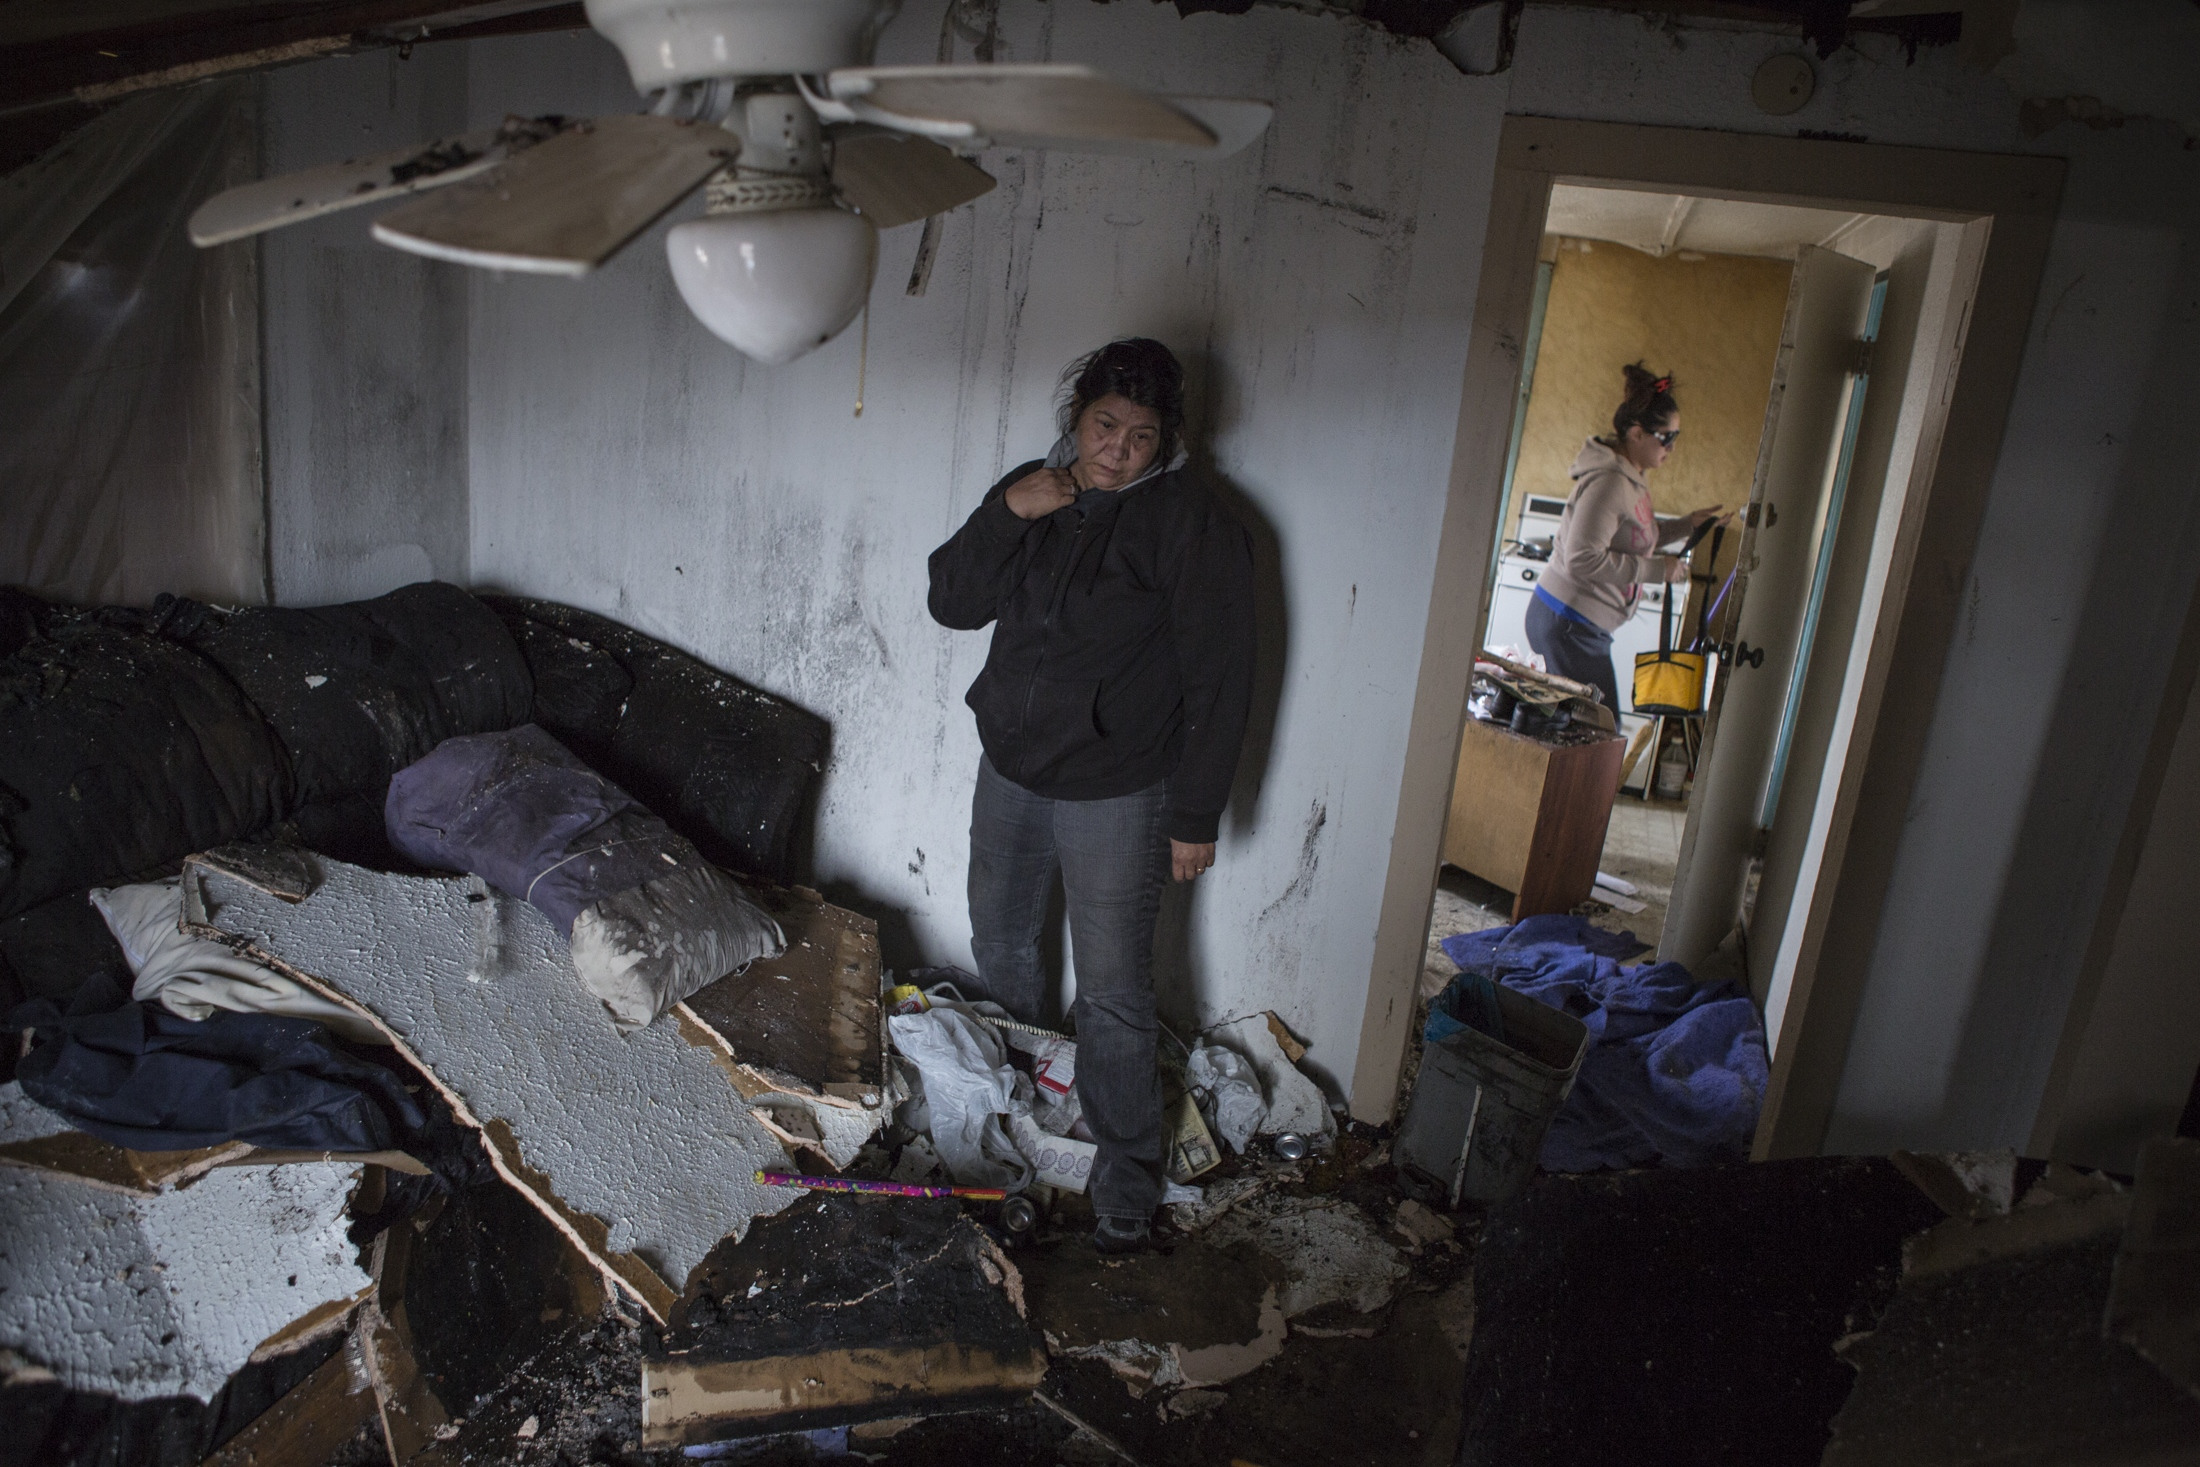 Debra Trujillo stares at the destruction to her ex-husband's home where emergency responders found Gene Garcia asleep on his couch while the home was still in flames. A chimney fire spread to the roof and neighboring rooms causing the roof to collapse moments before he was rescued.